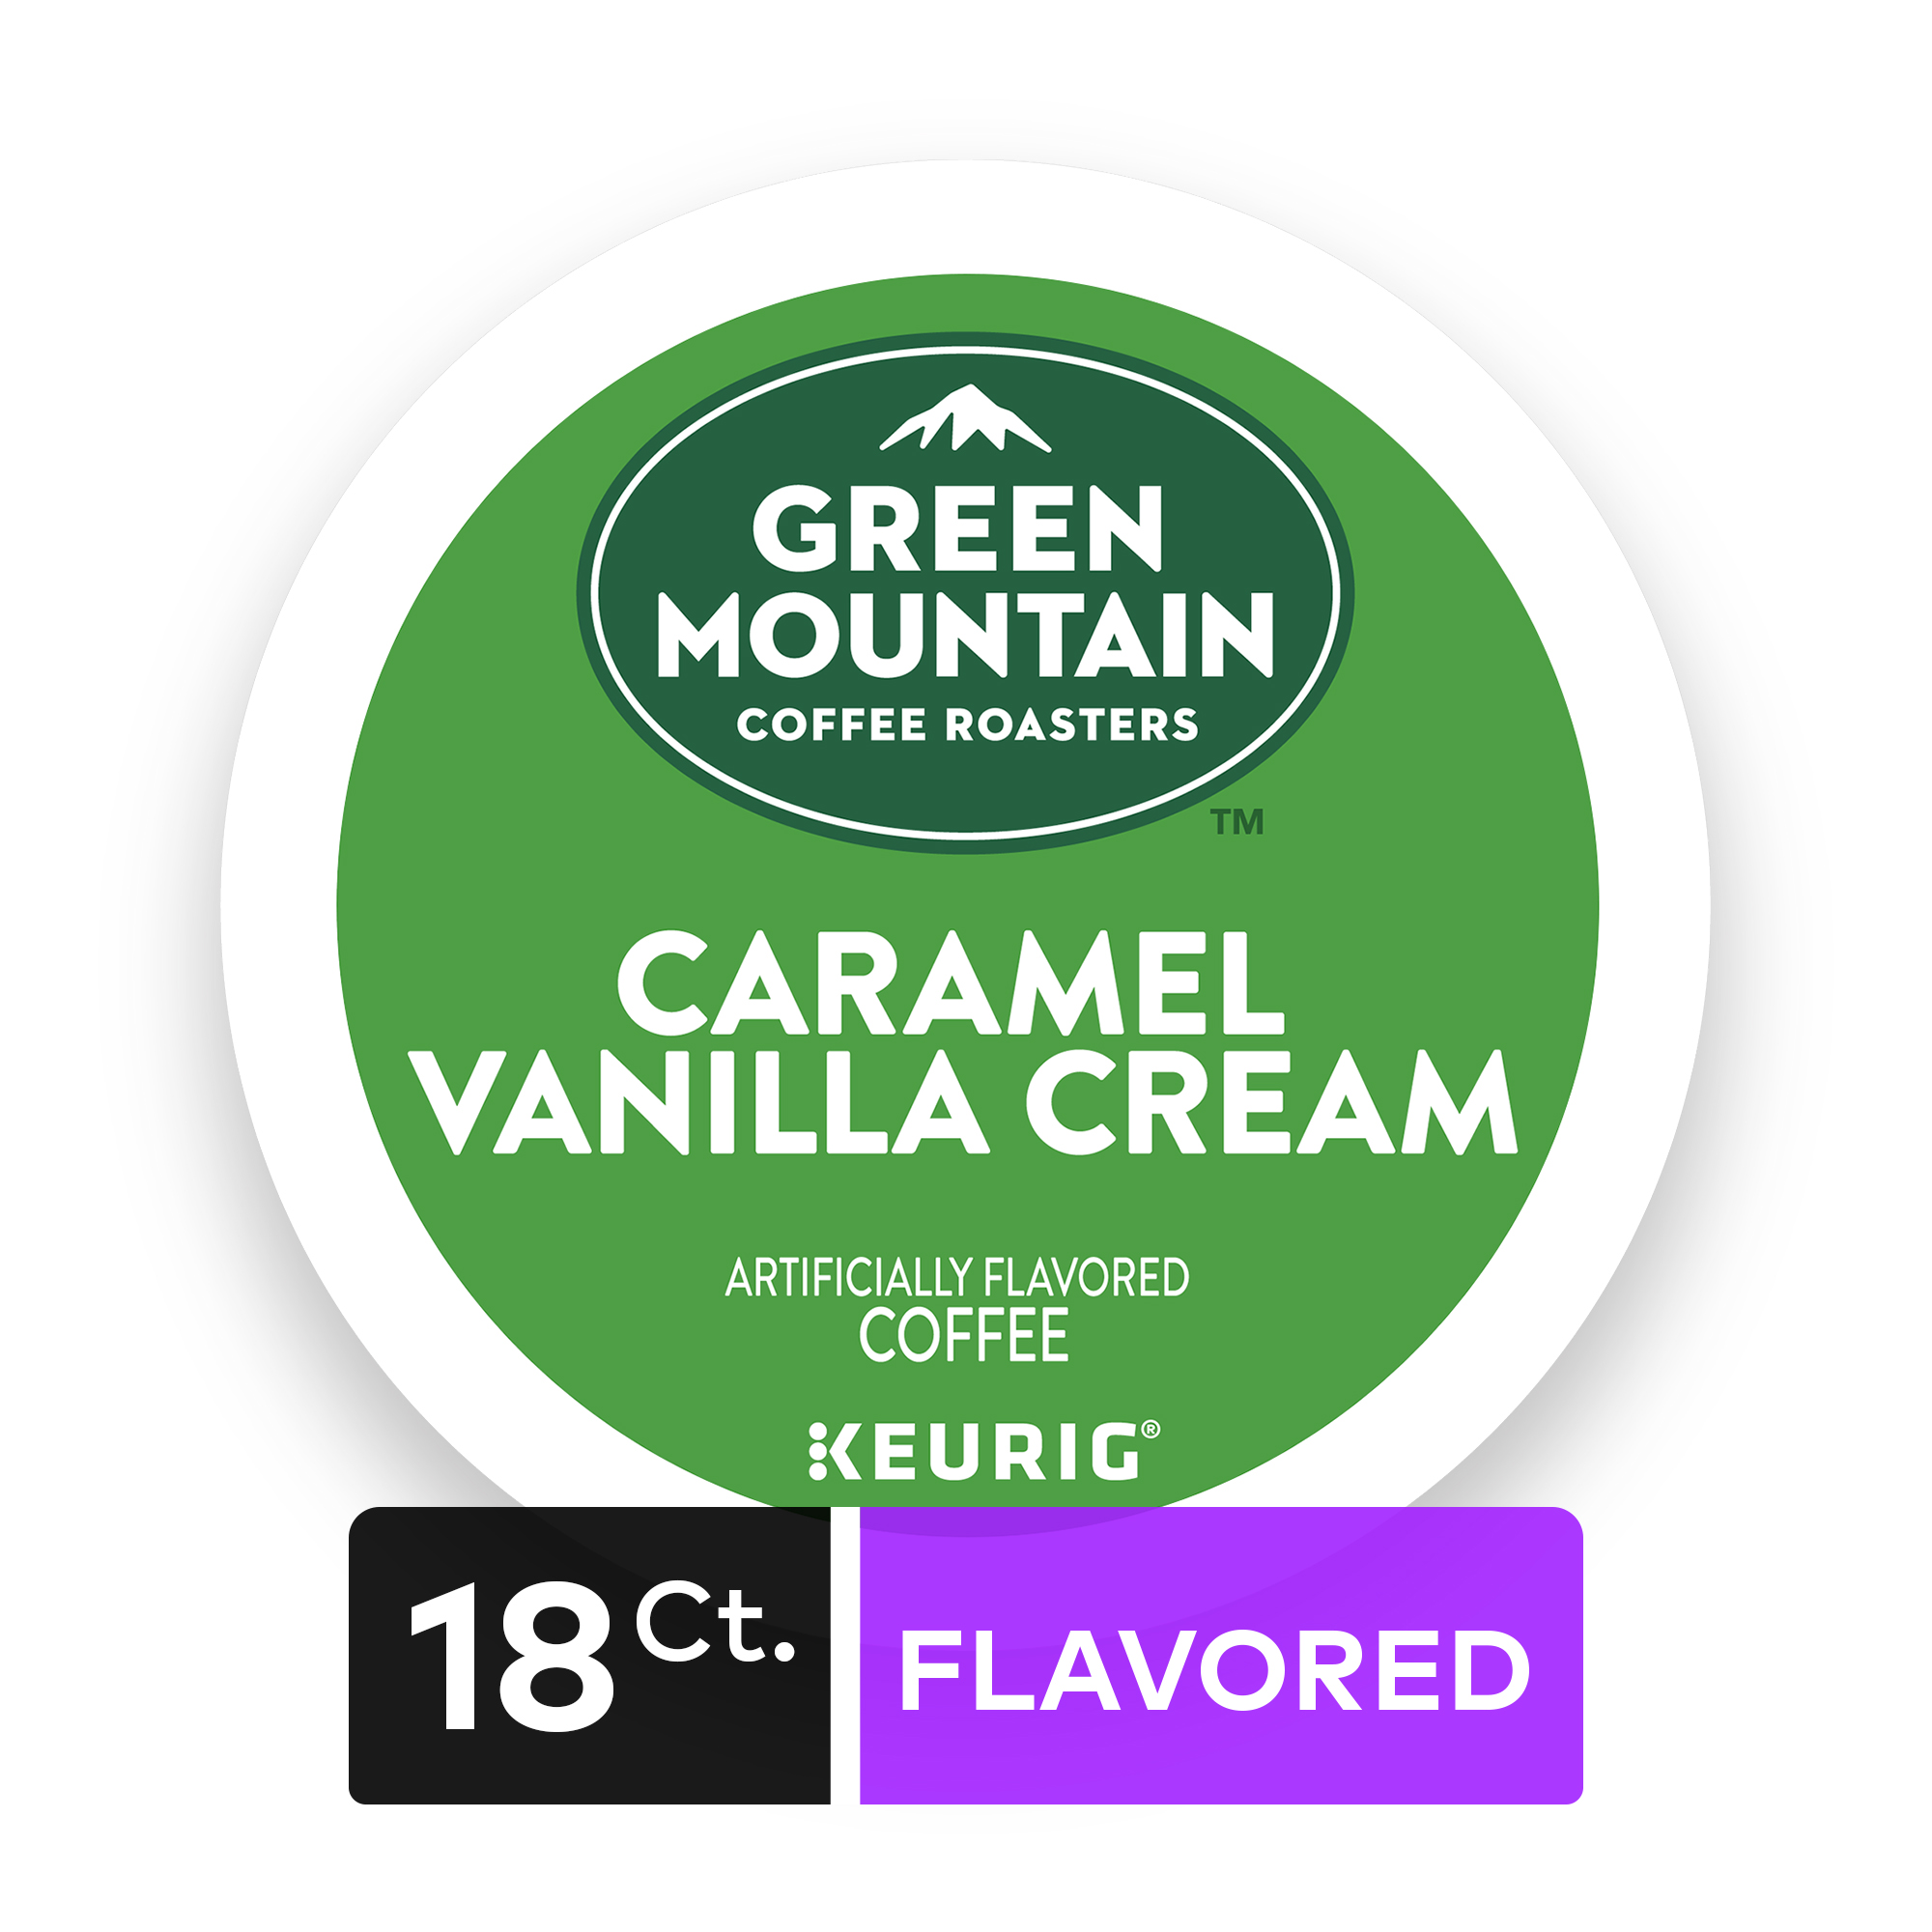 Green Mountain Coffee Roasters Caramel Vanilla Cream Keurig Single-Serve K-Cup pods, Light Roast Coffee, 18 Count